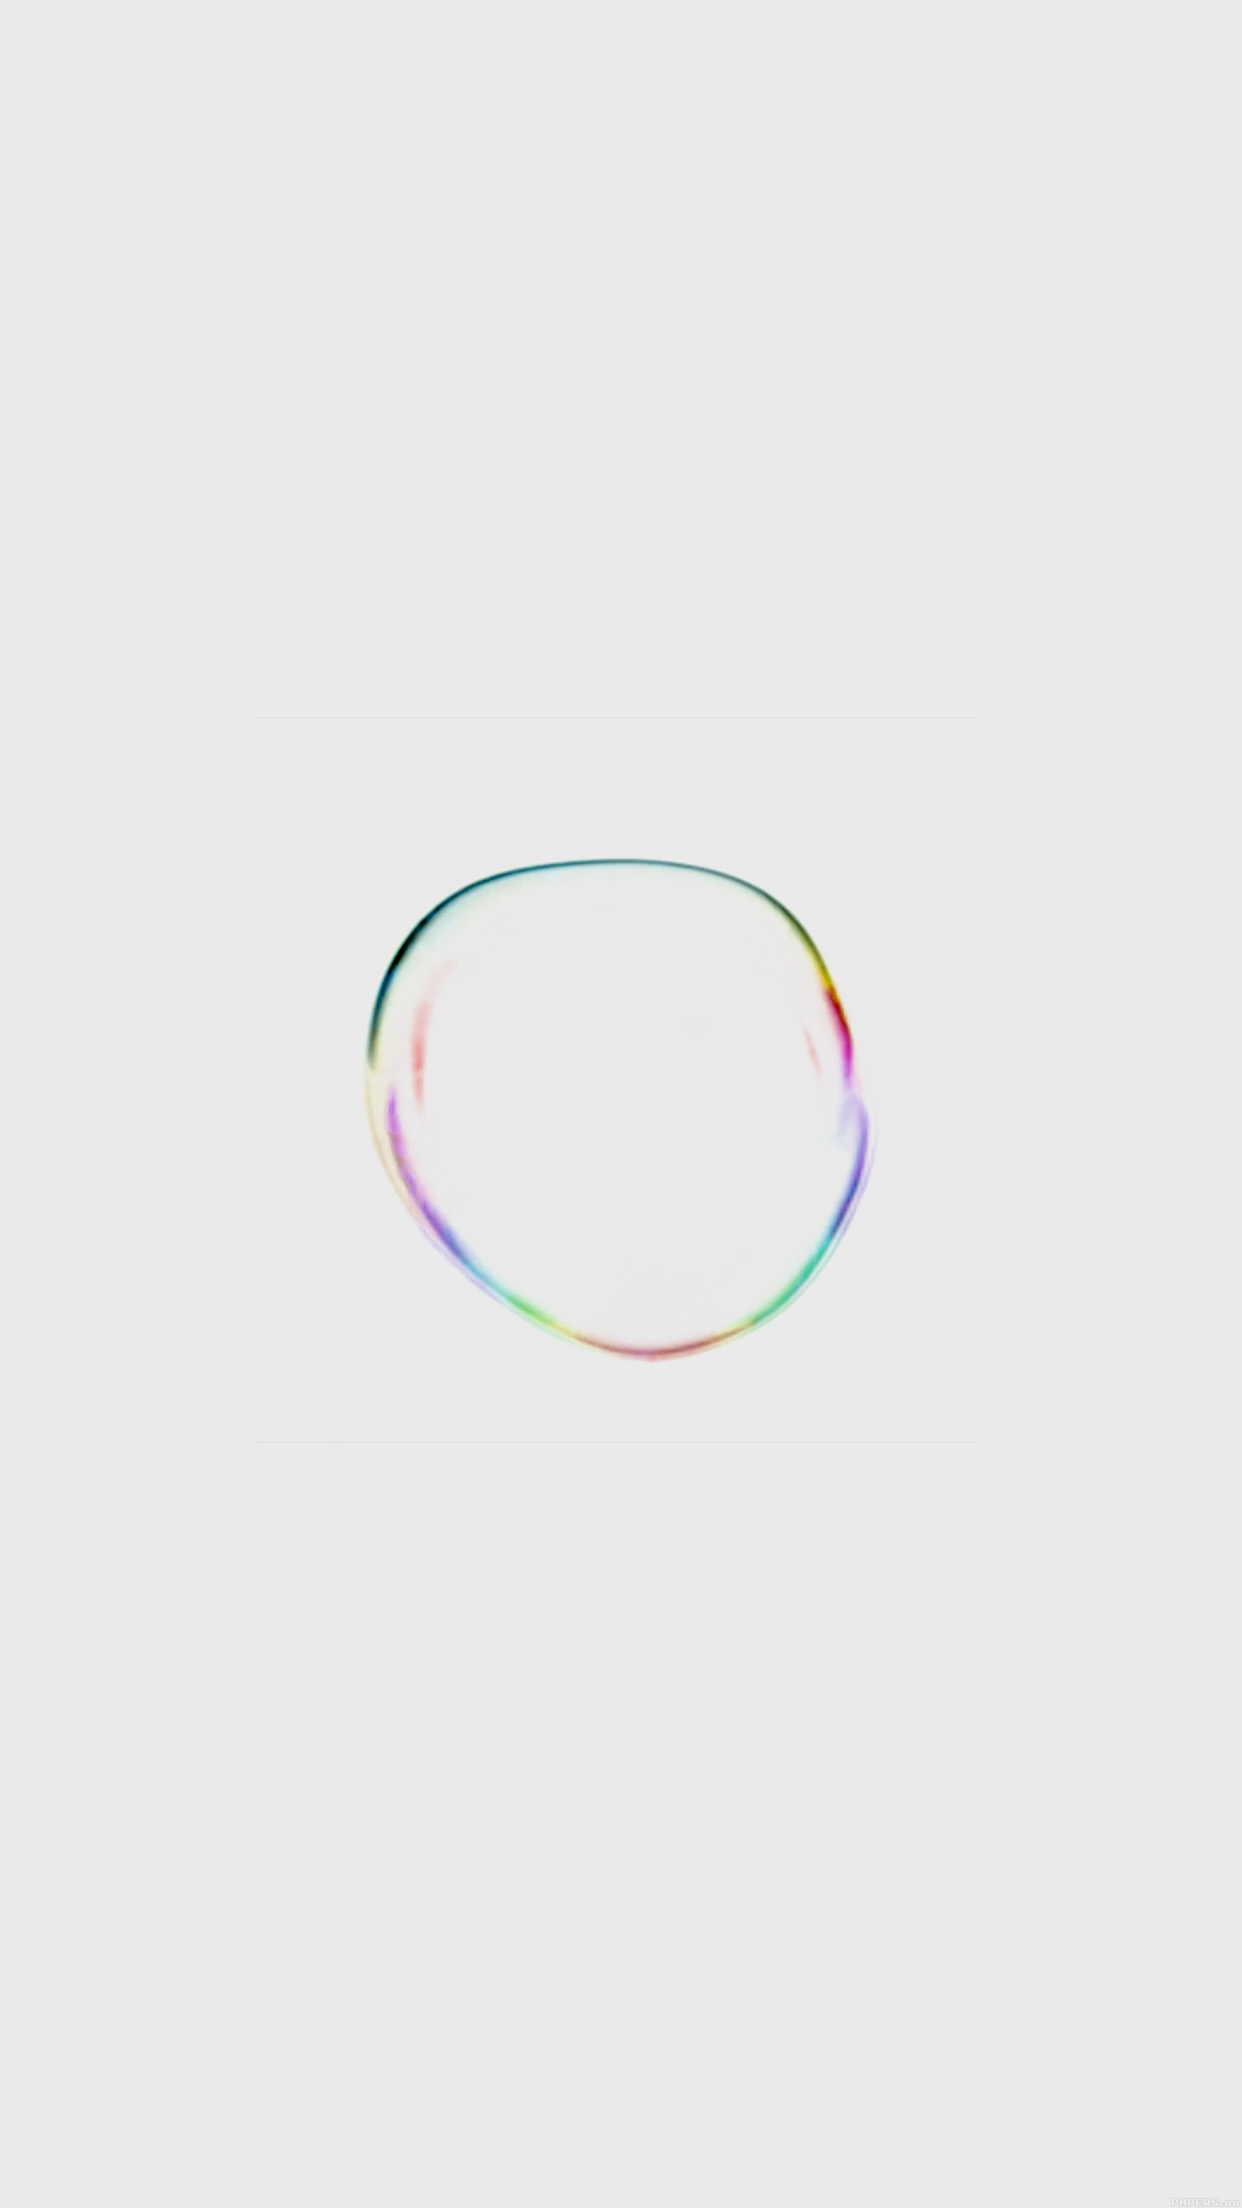 Apple Macbook Art Bubble White Android wallpaper